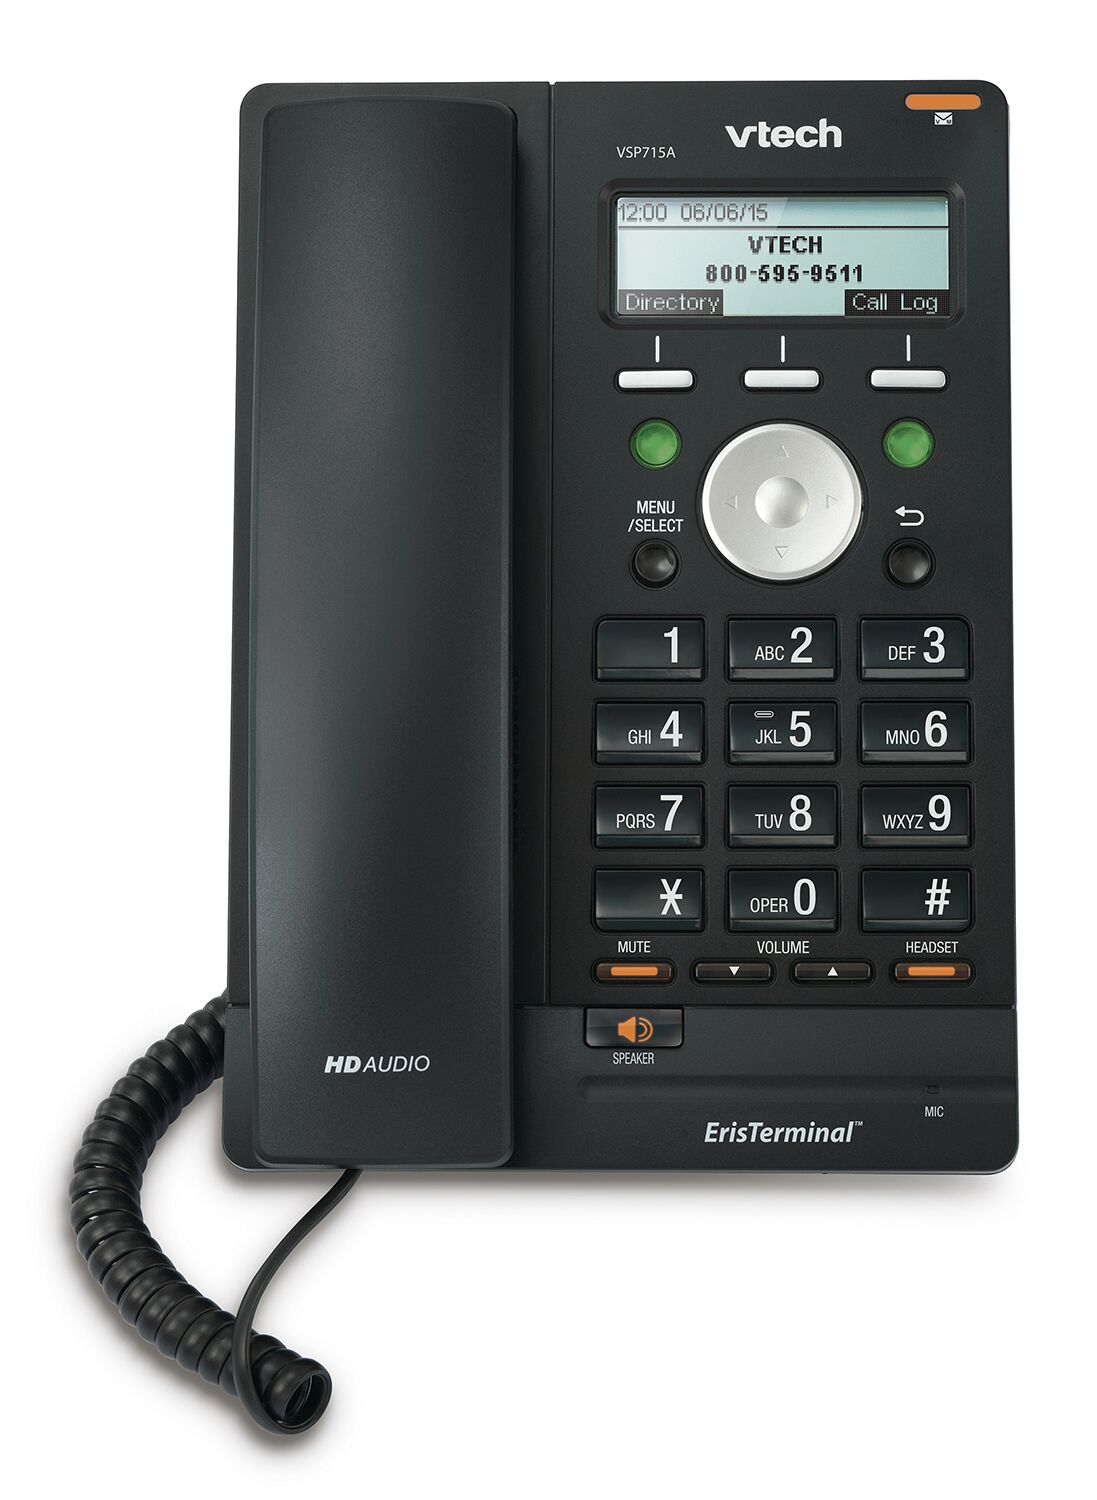 Vtech Vsp715a Sip Deskphone Provu Communications